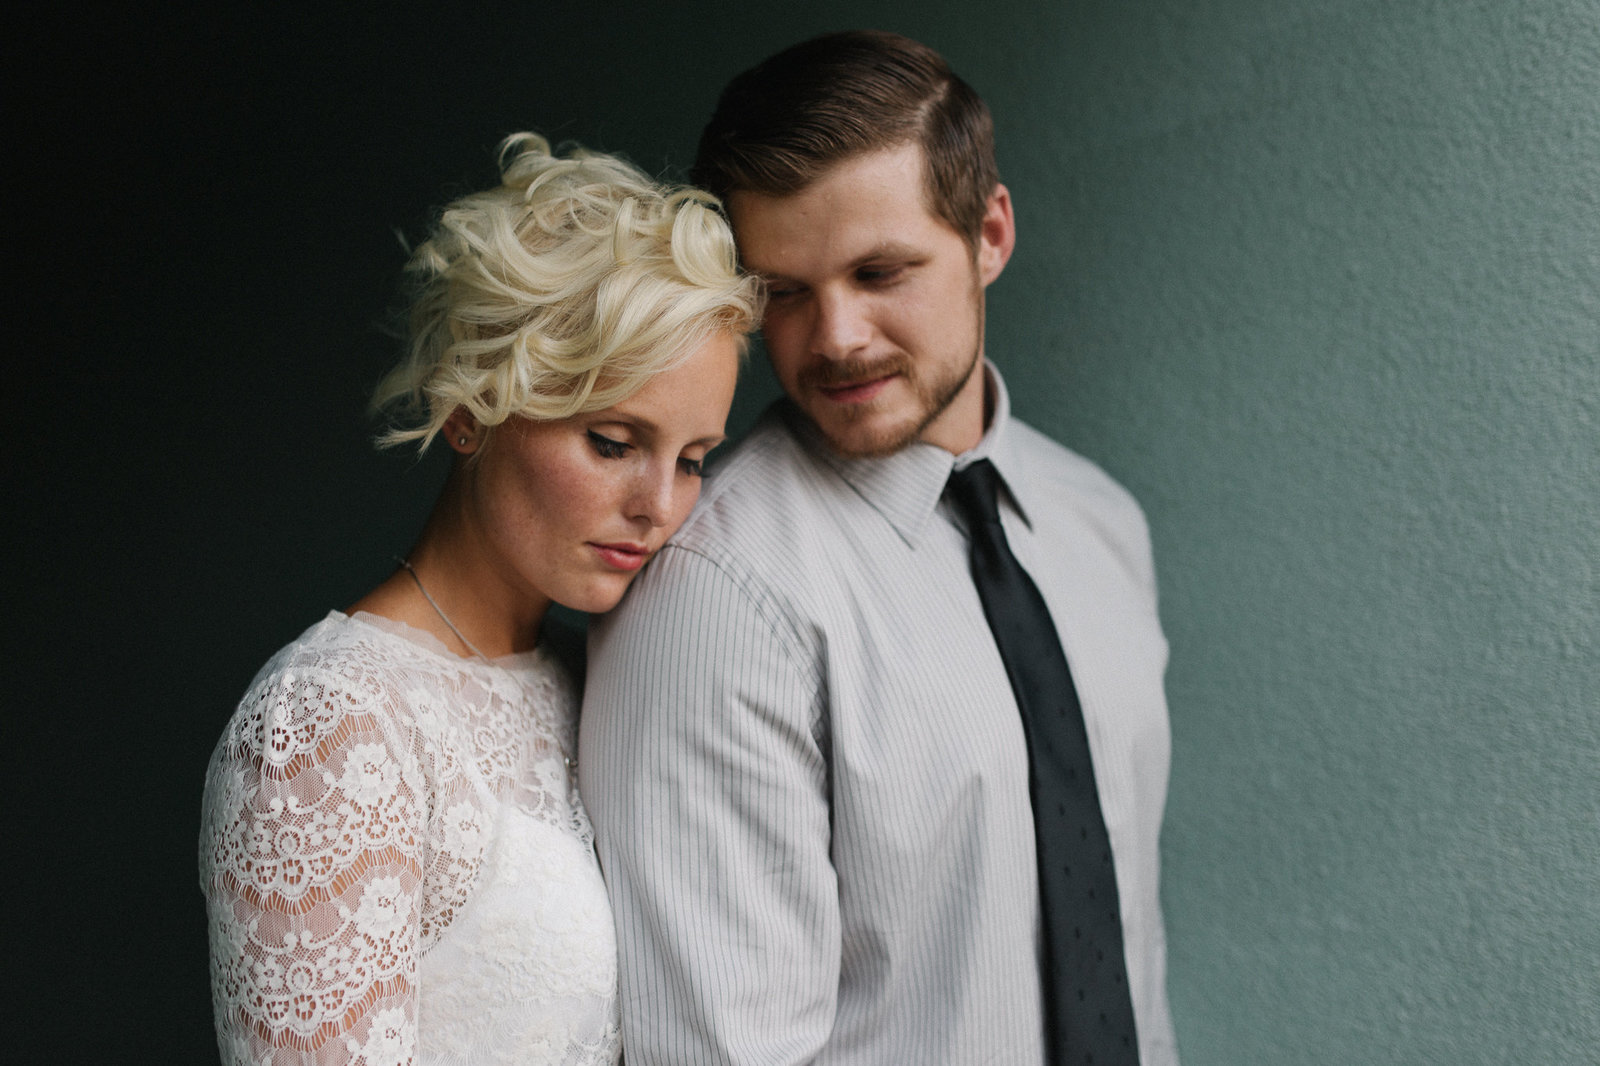 Bride and Groom embrace after ceremony during golden hour in Phoenix, Arizona